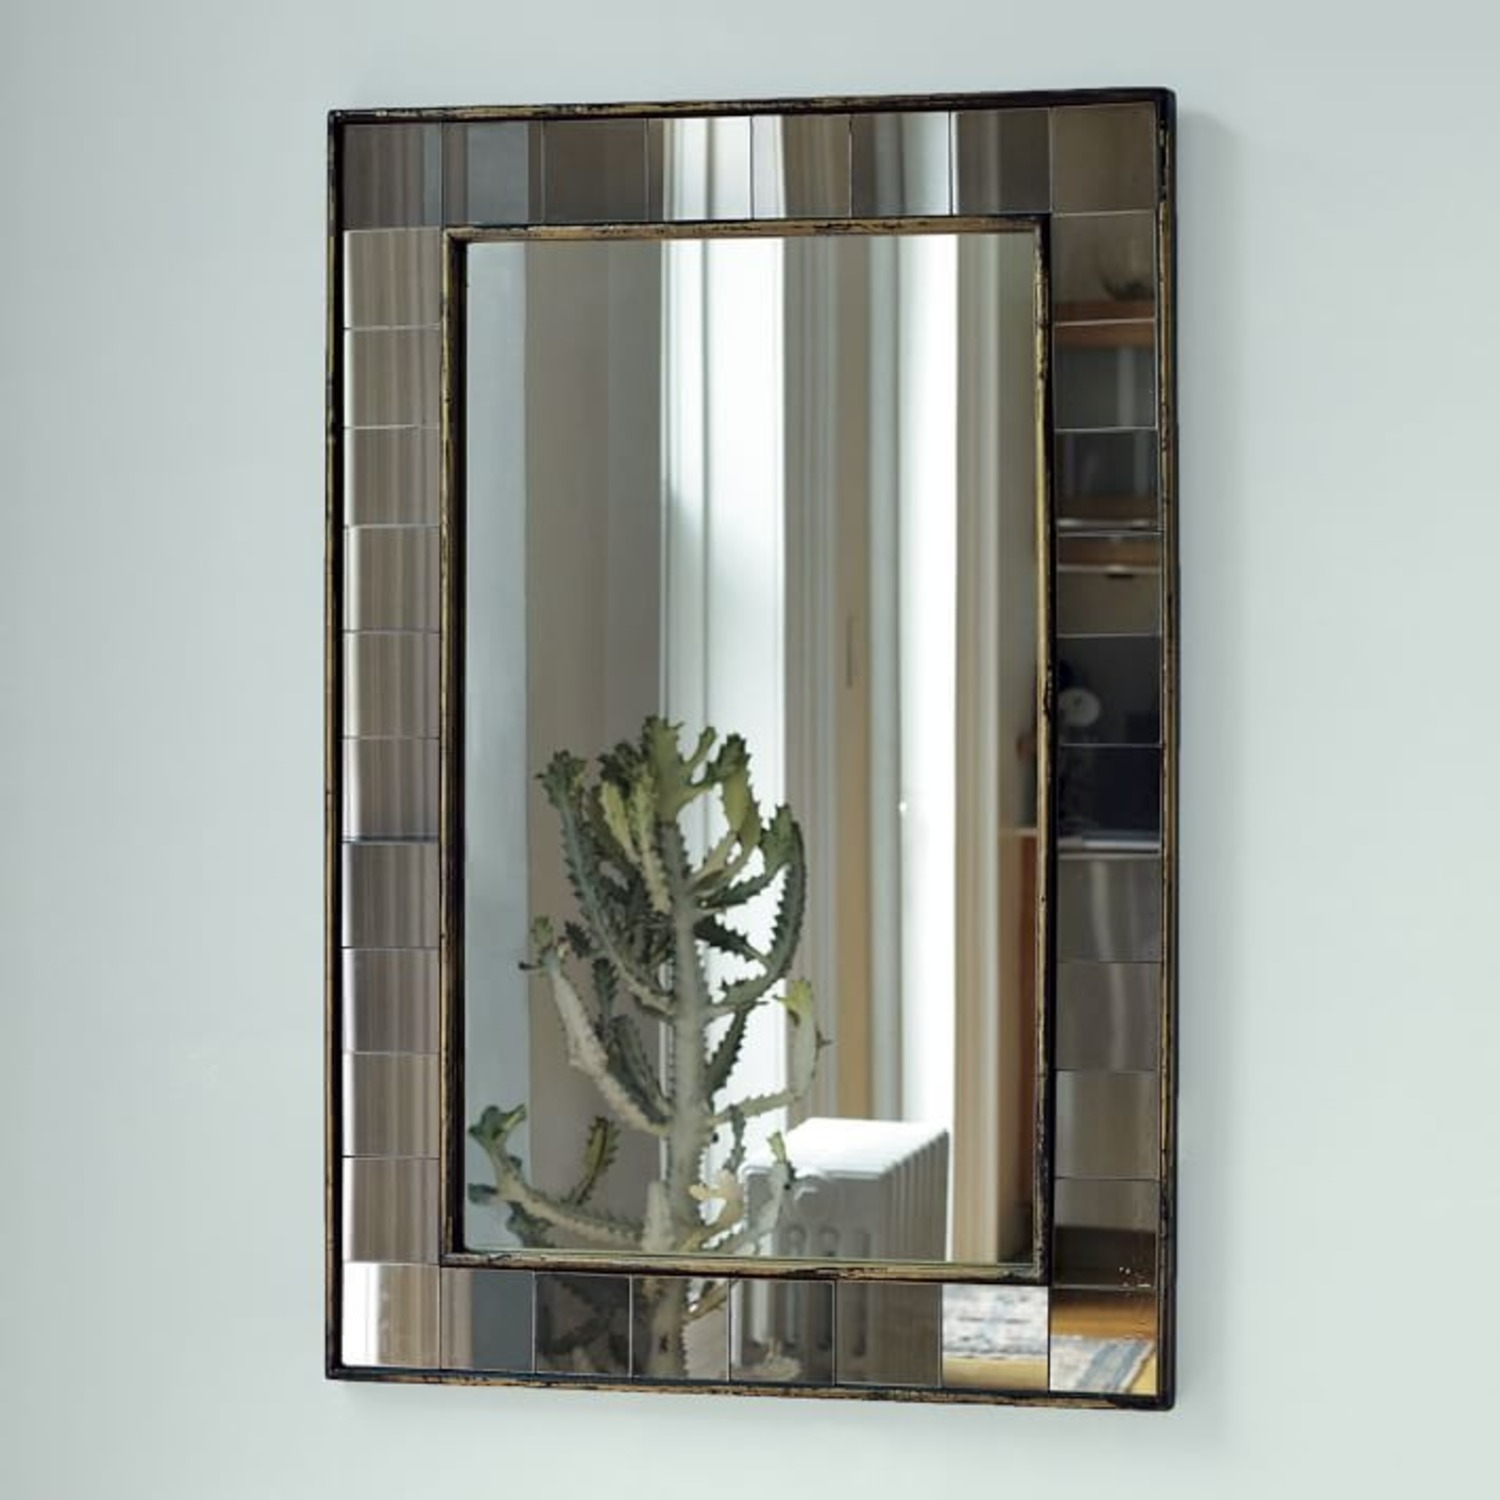 West Elm Antique Tiled Wall Mirror - image-2